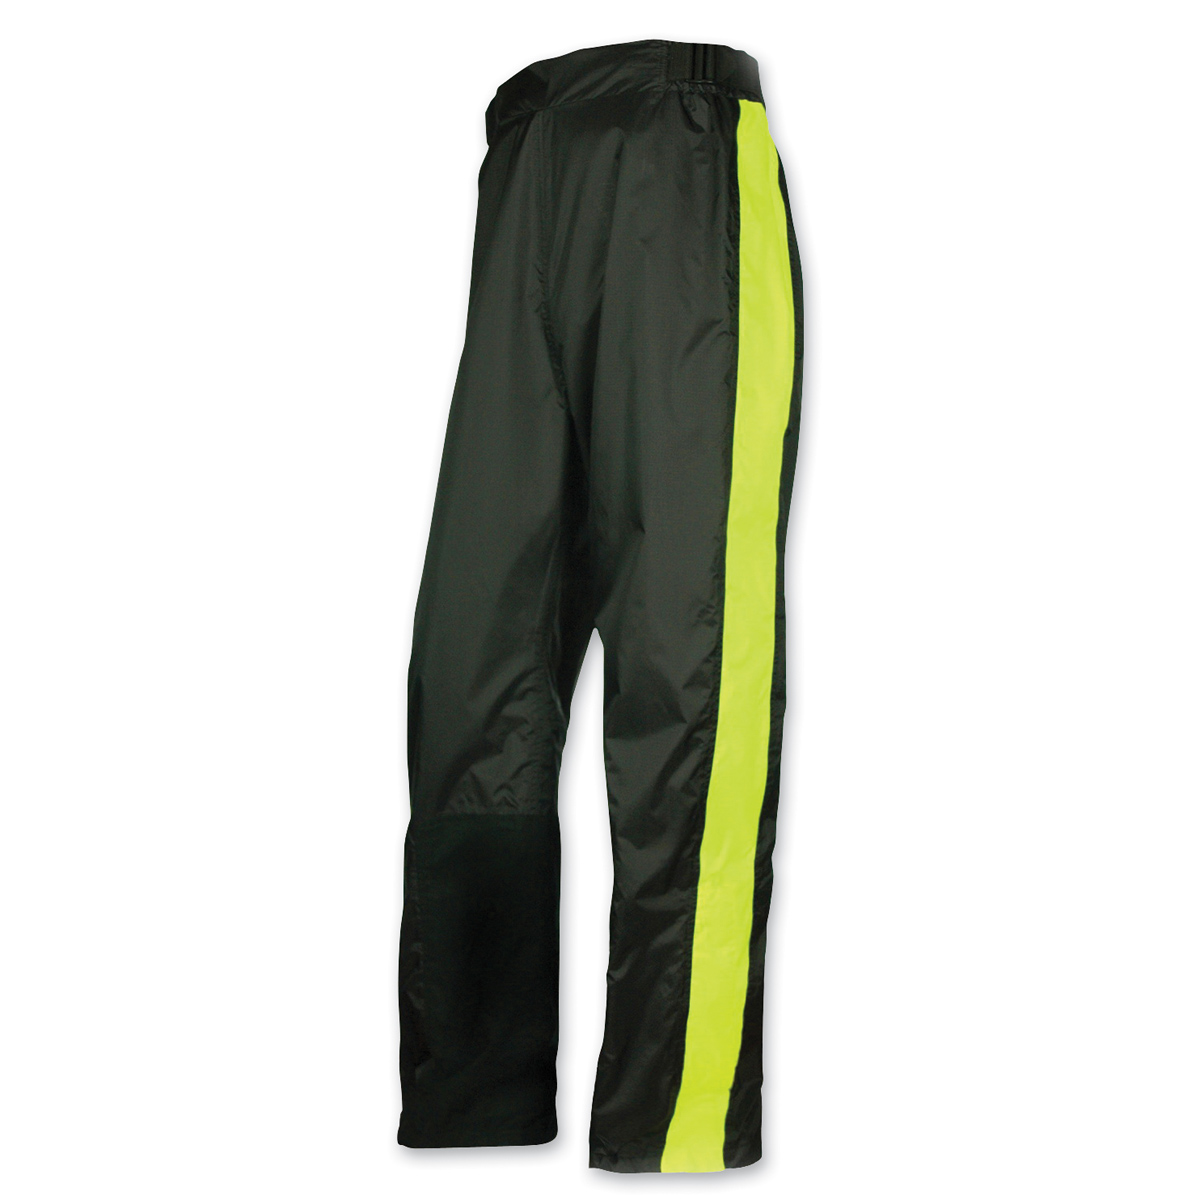 Olympia Moto Sports Unisex Horizon Neon Yellow/Black Rain Pant